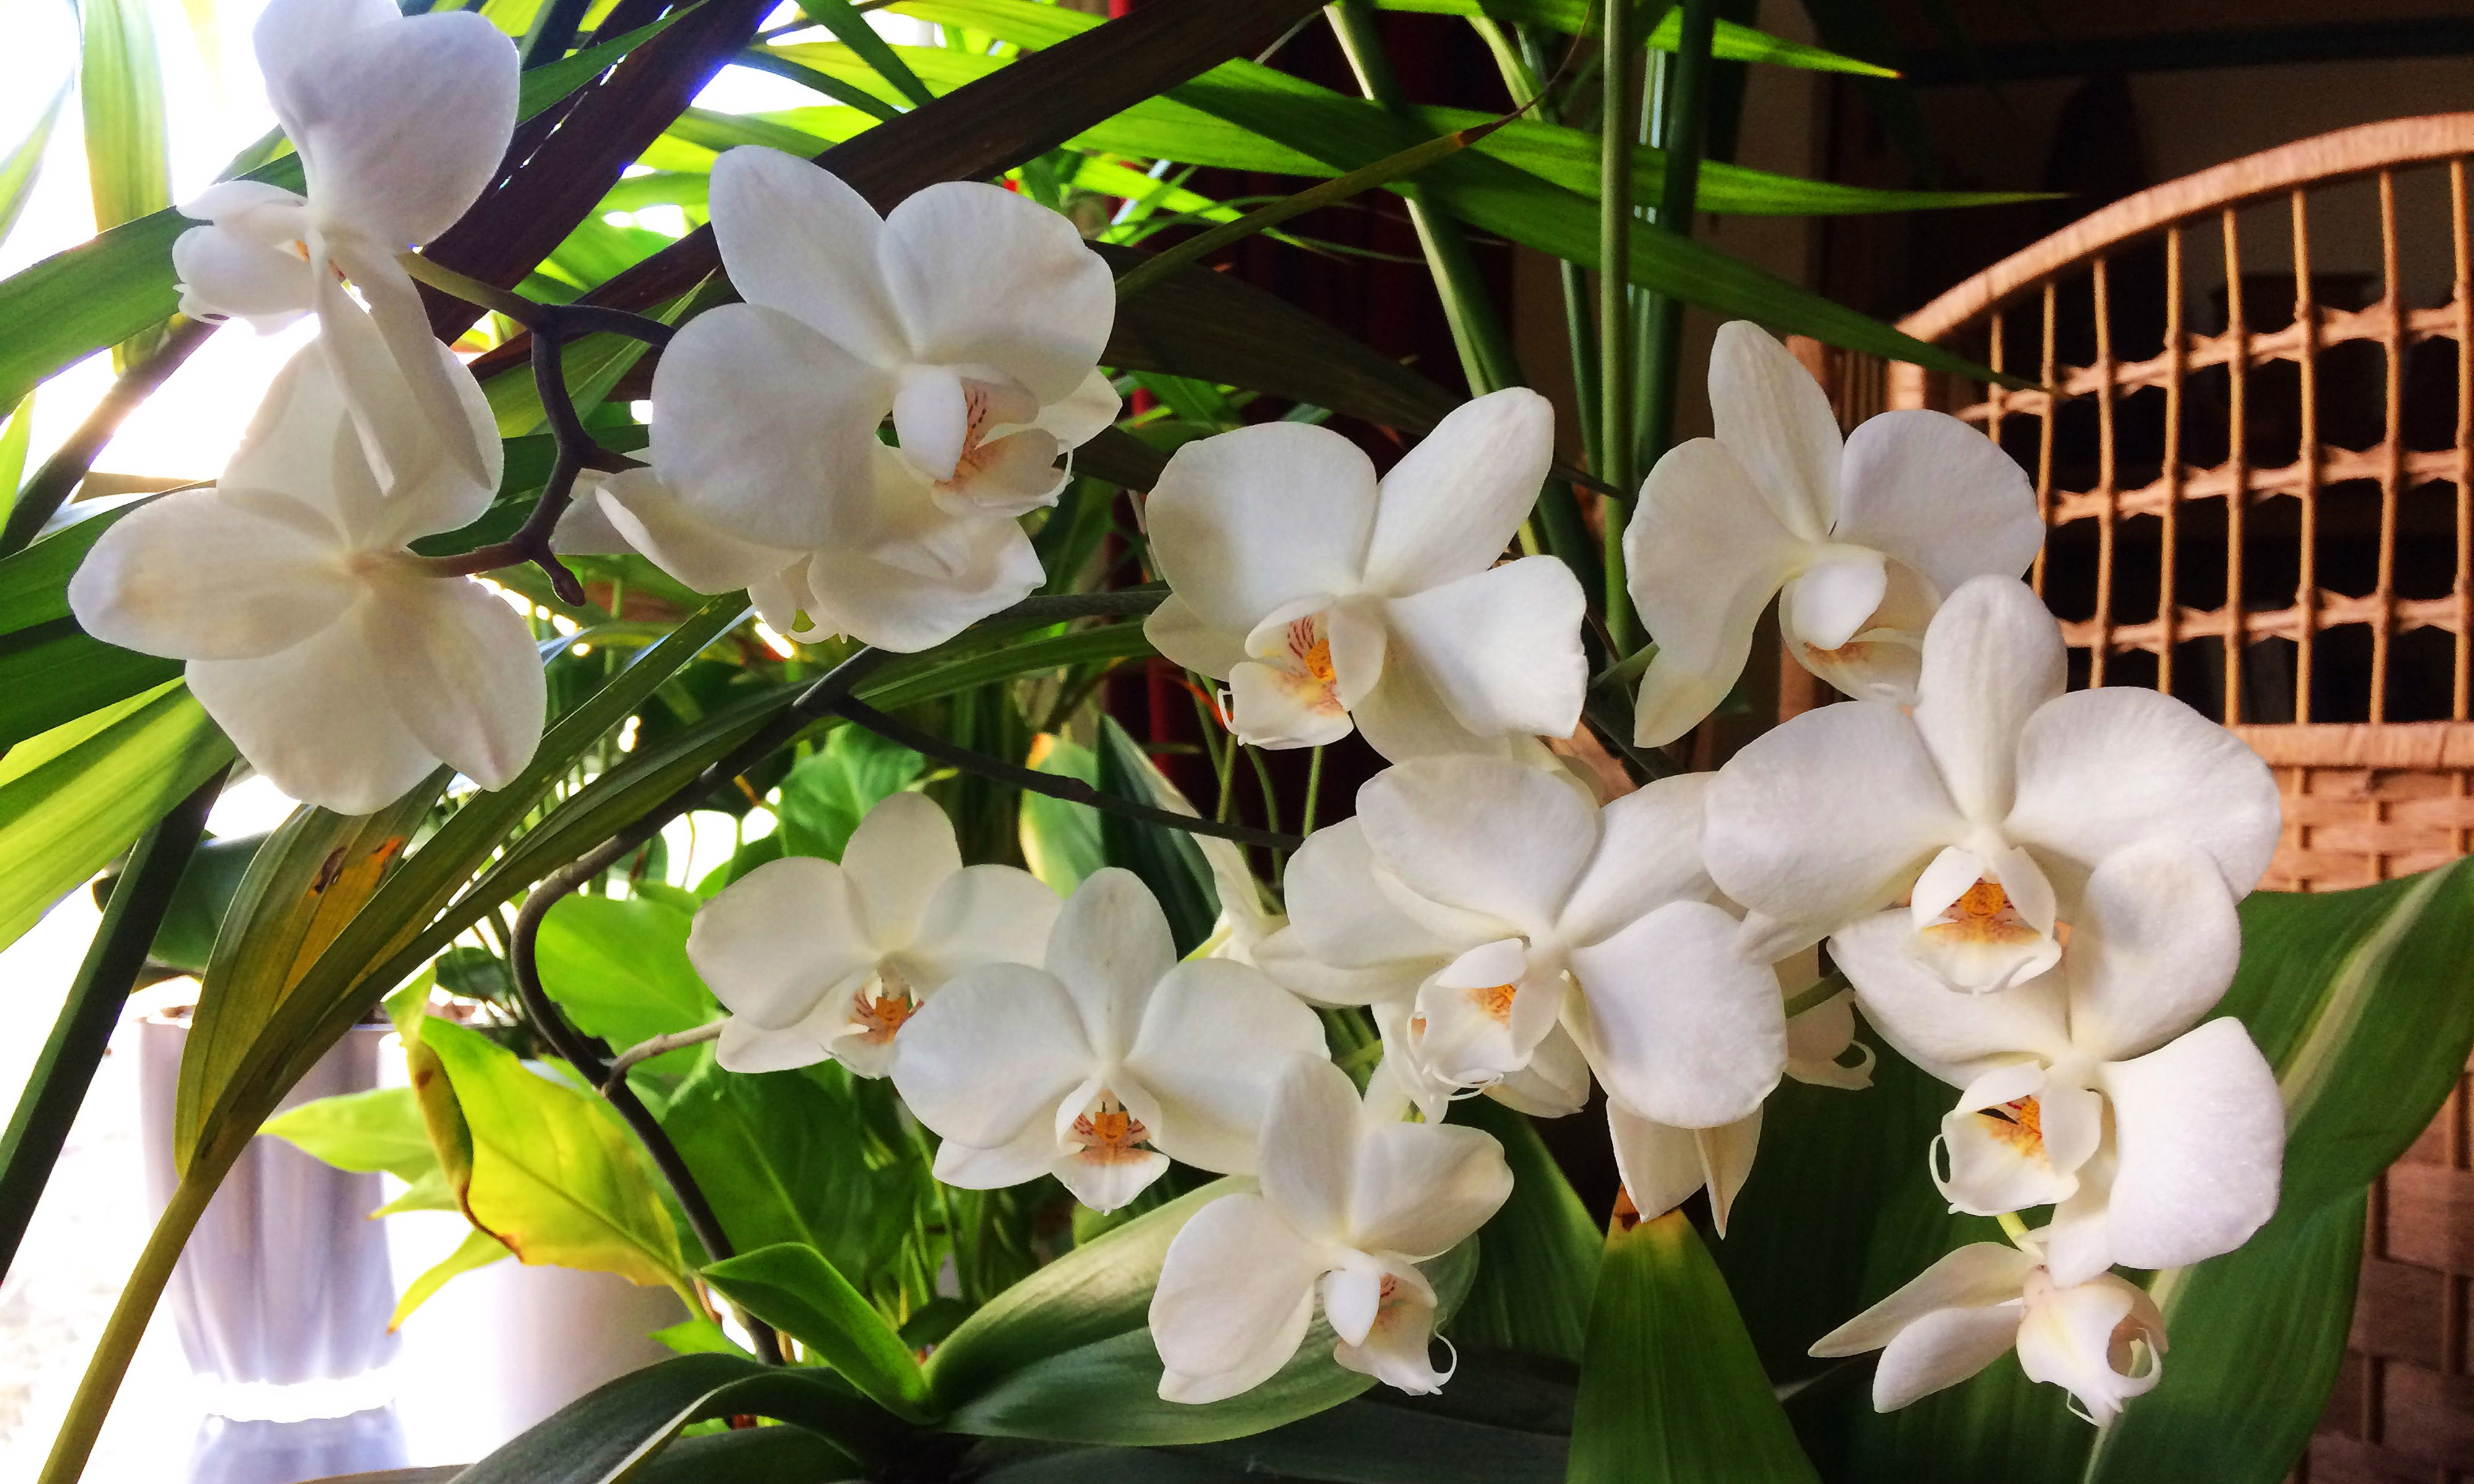 White orchids.